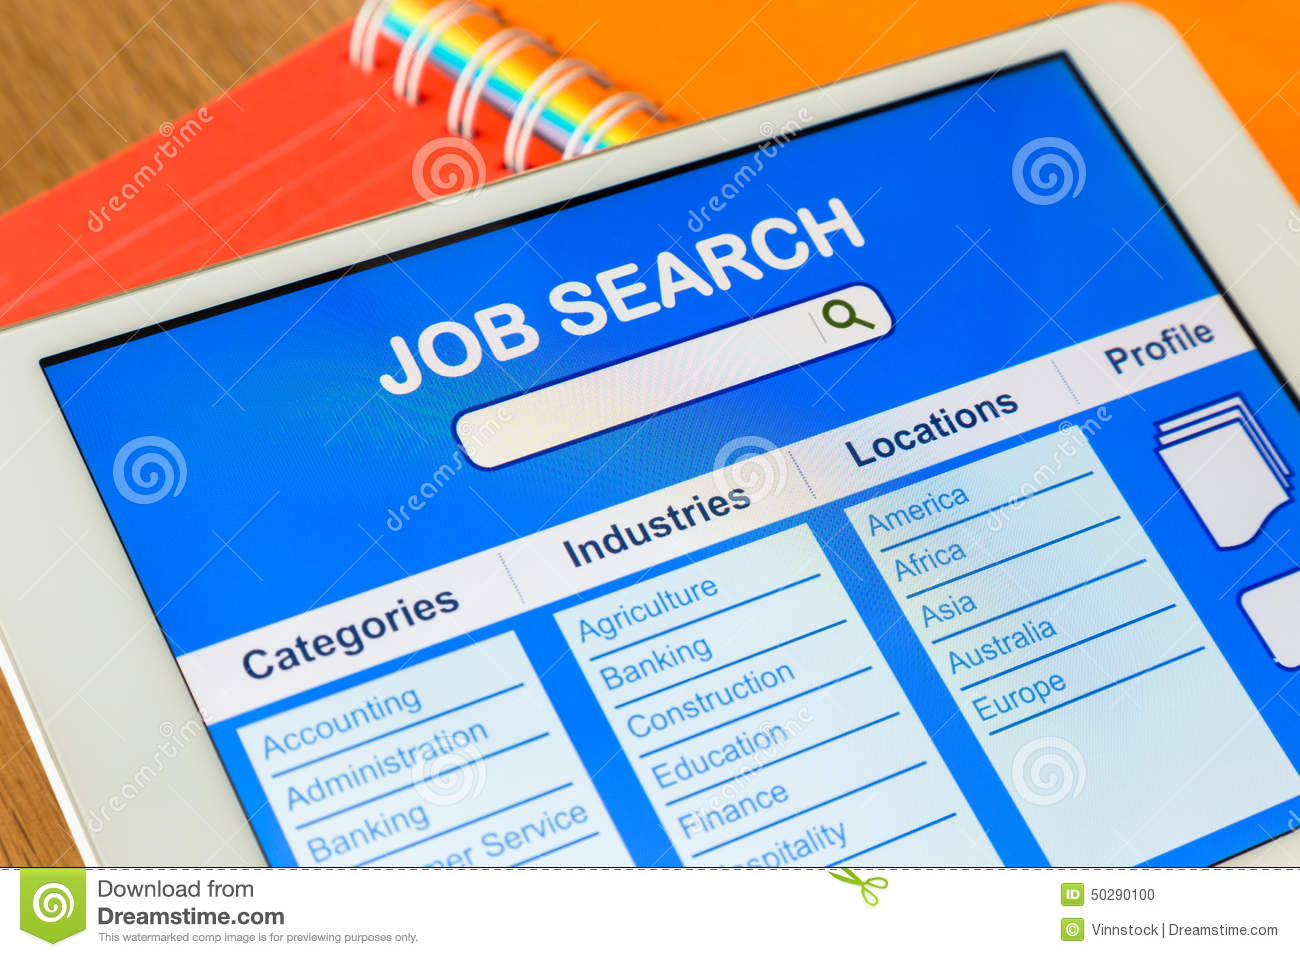 10 Must-Buy Books for Job Seekers - Job Search and Hiring